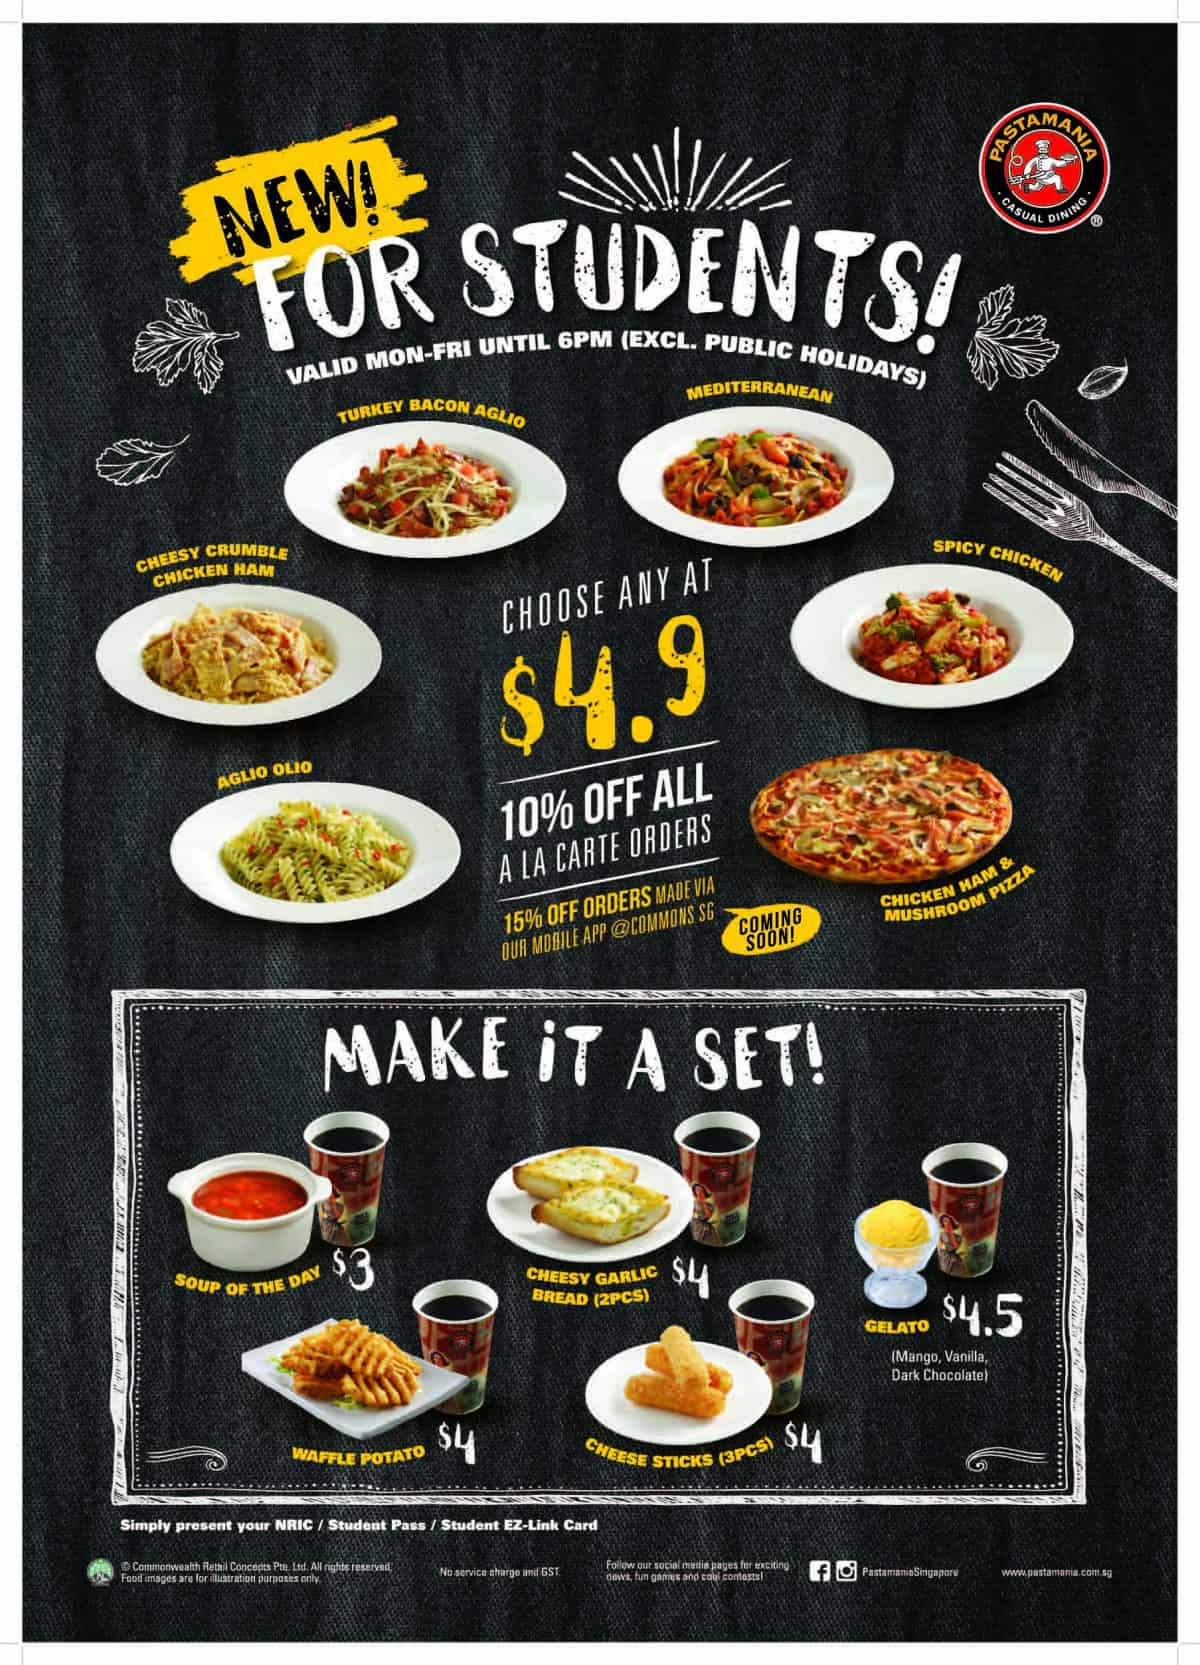 Pastamania Student Meal